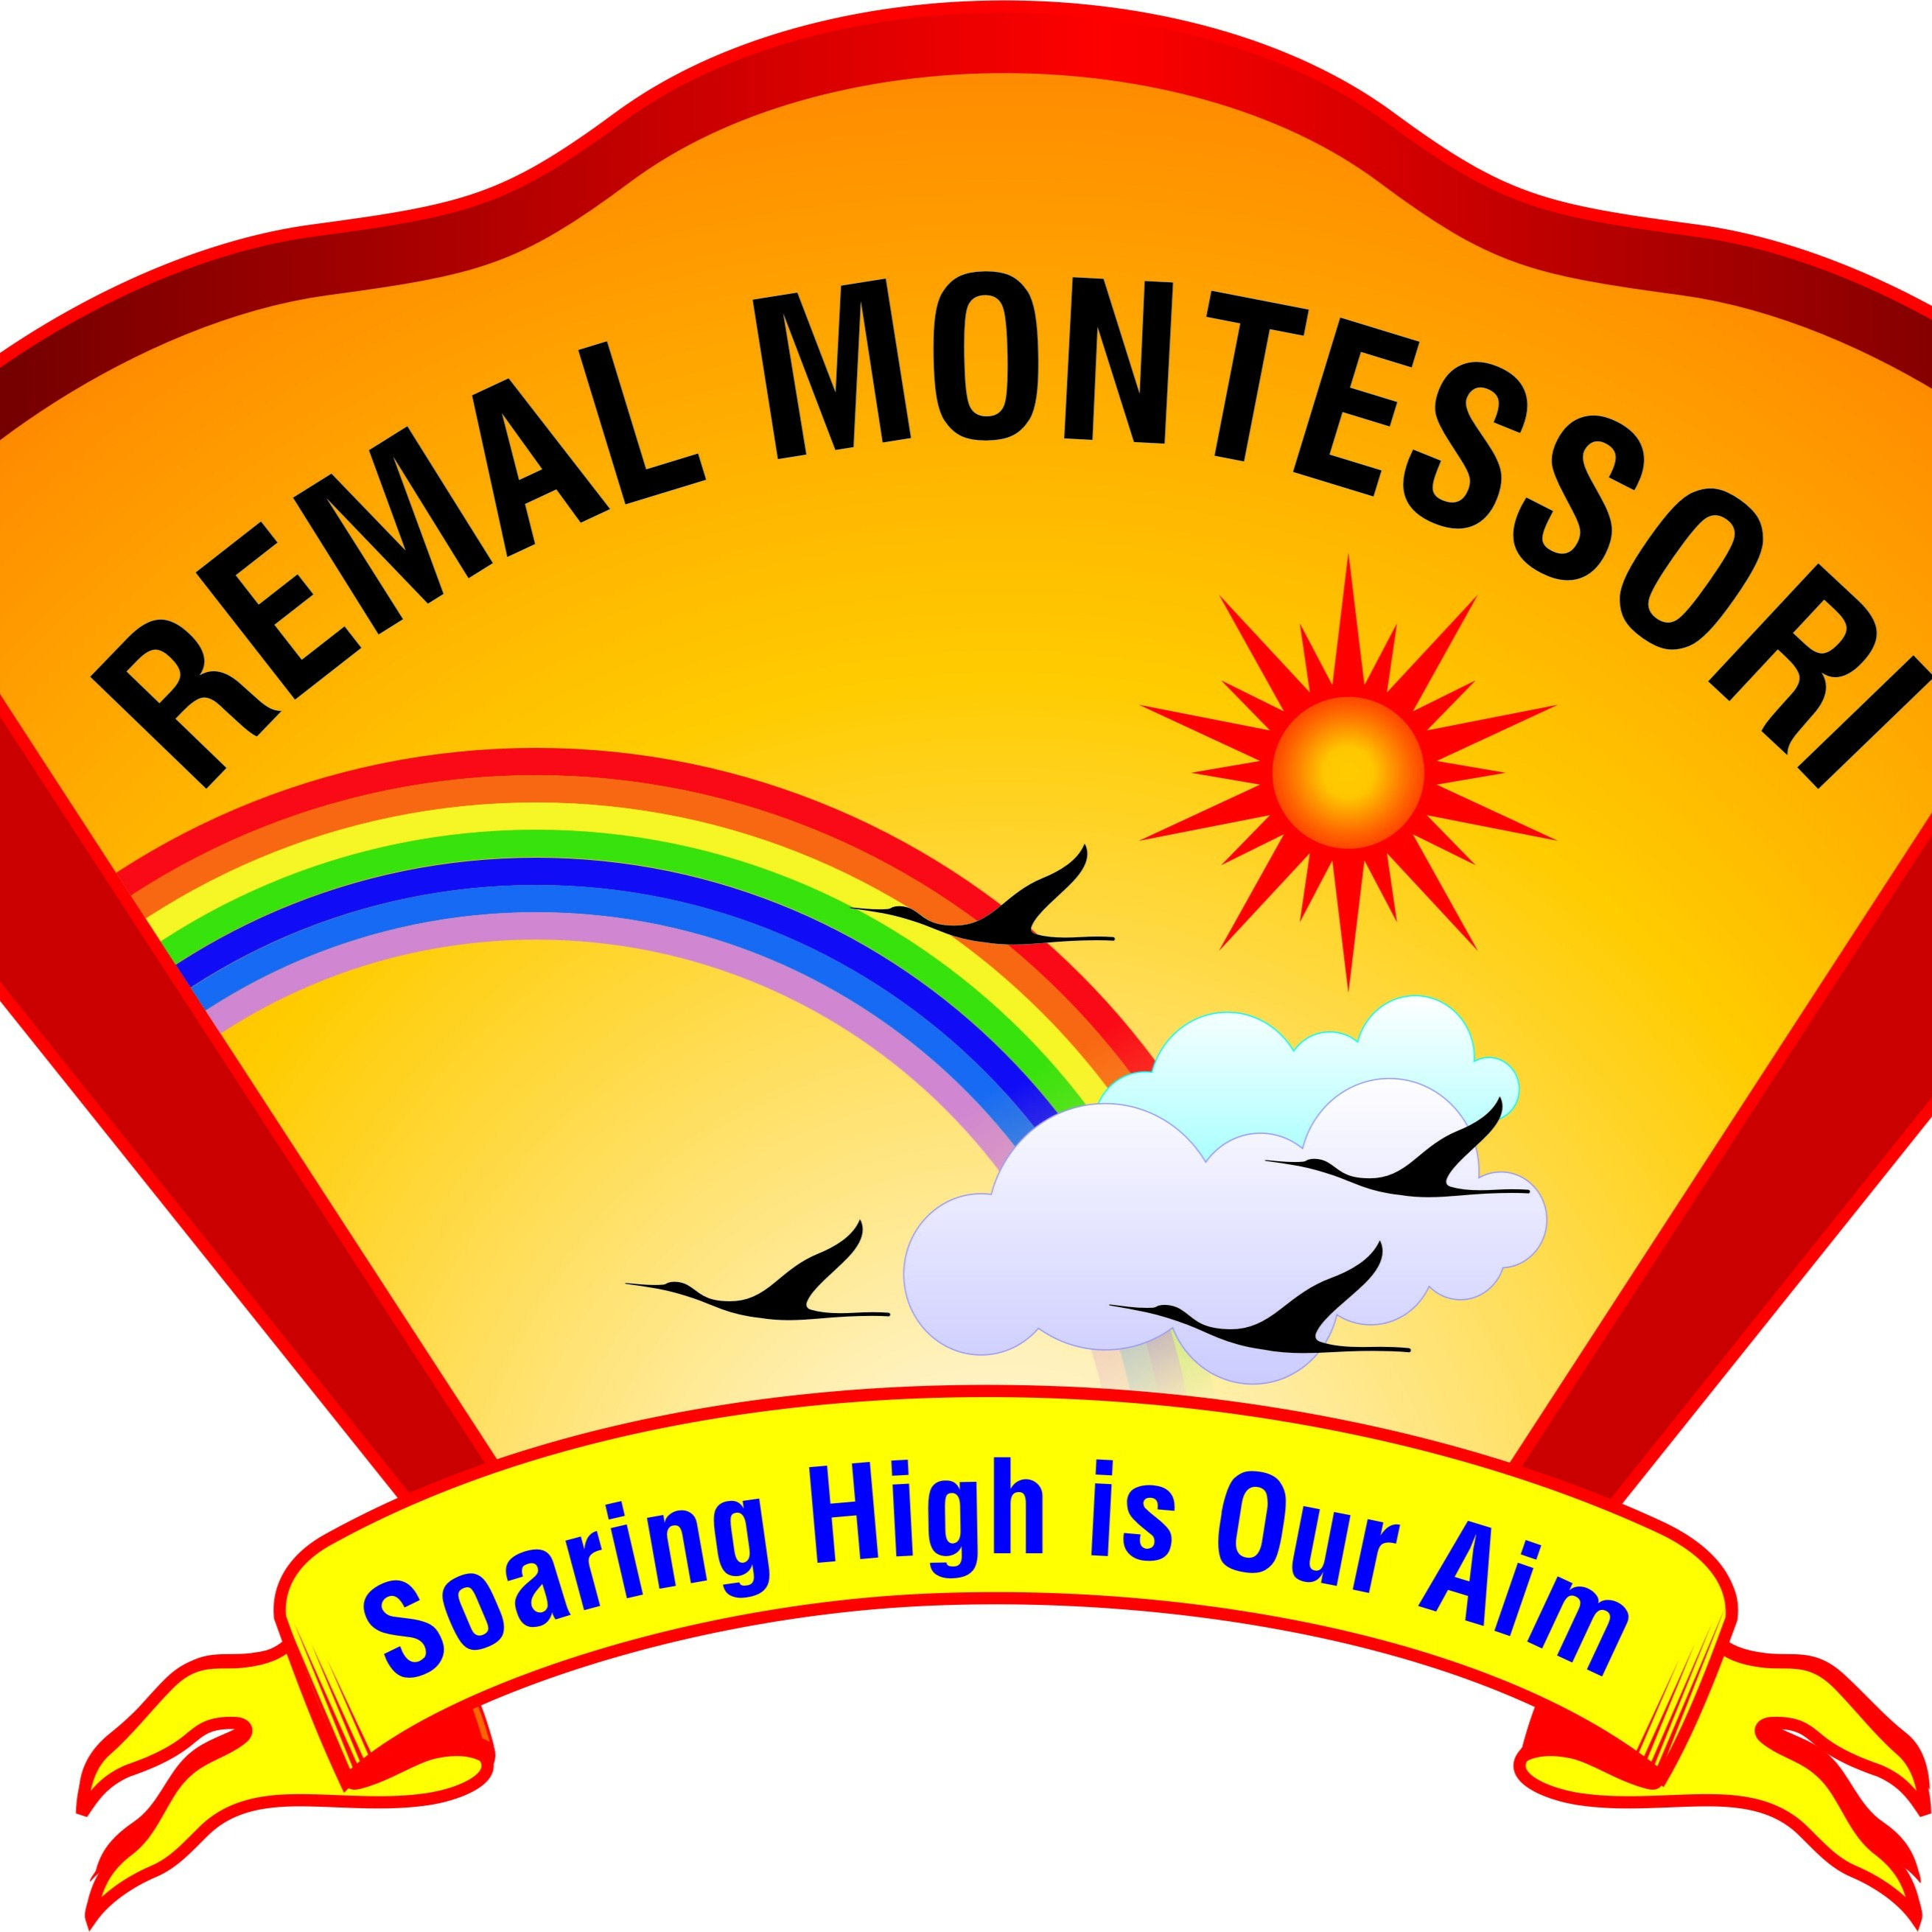 Remal Montessori School